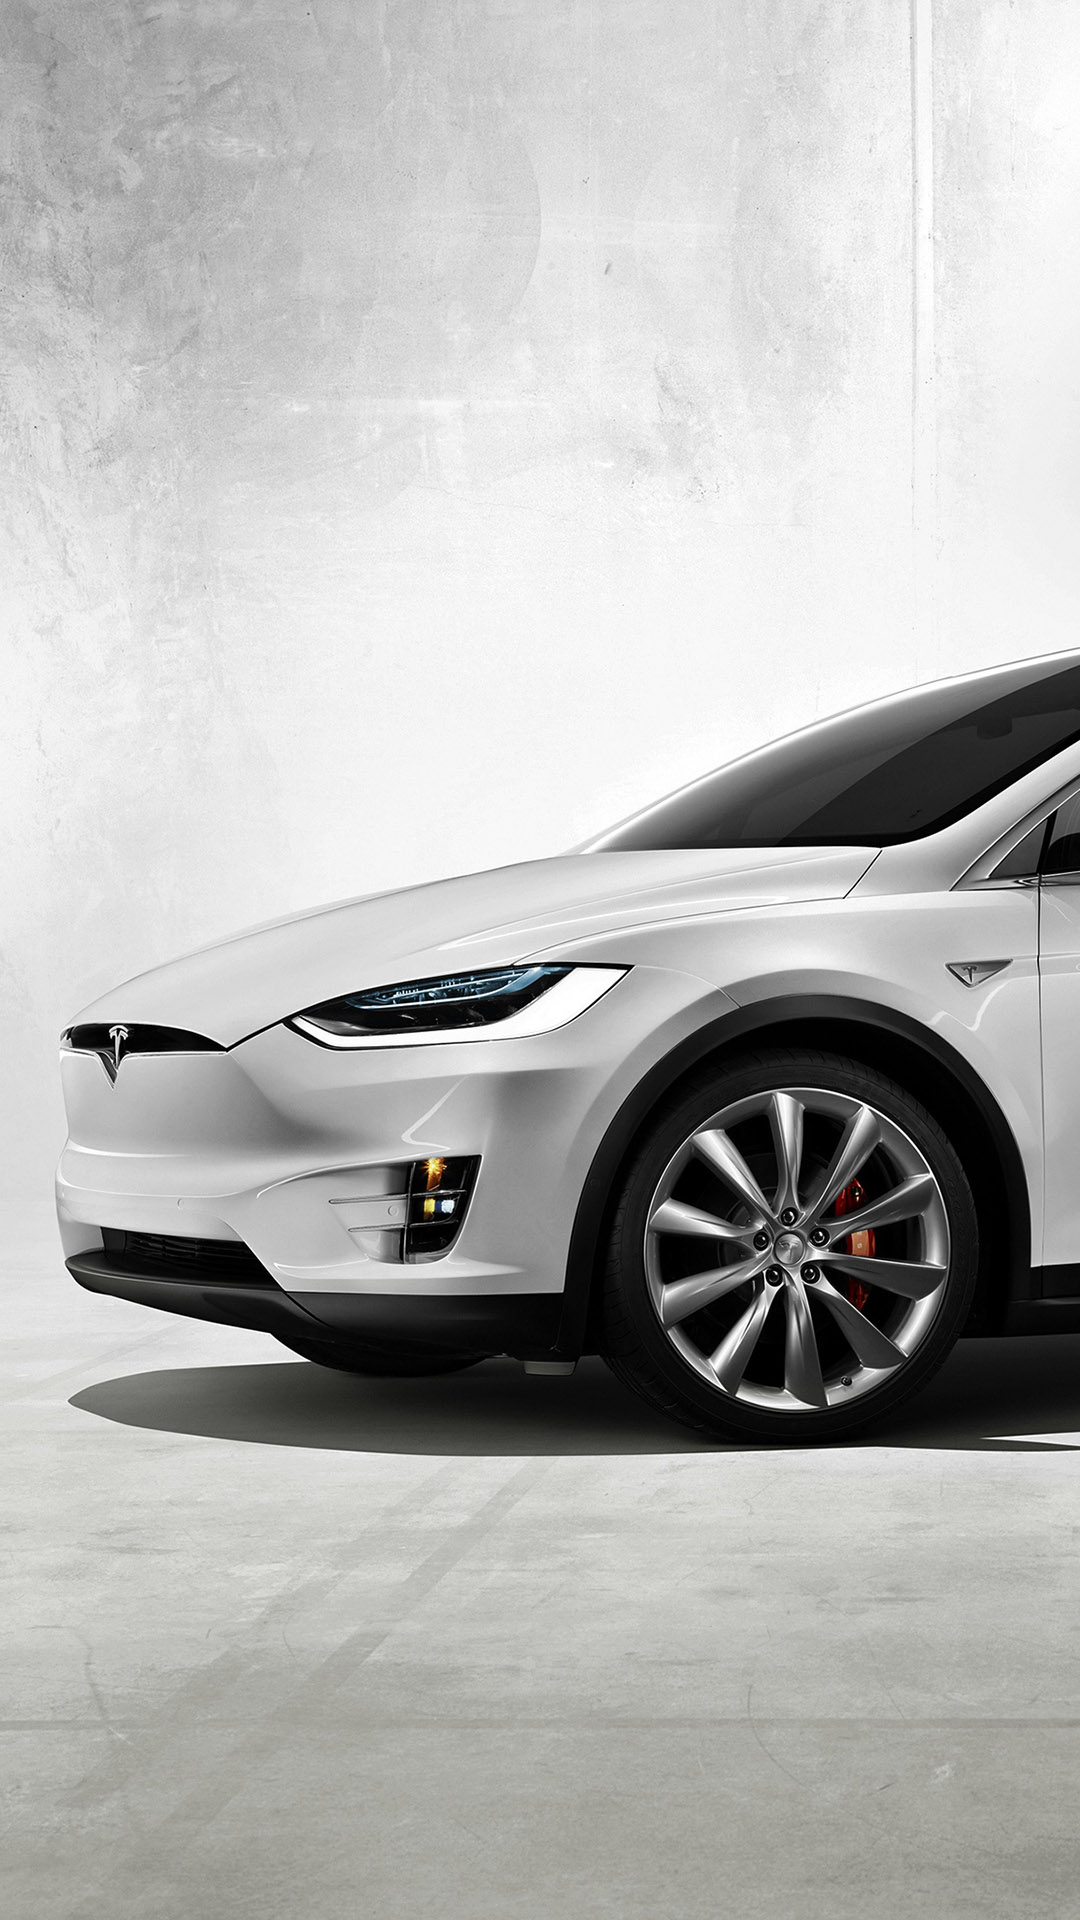 iPhone wallpaper White Tesla Model X Les 3Wallpapers iPhone du jour (13/02/2018)